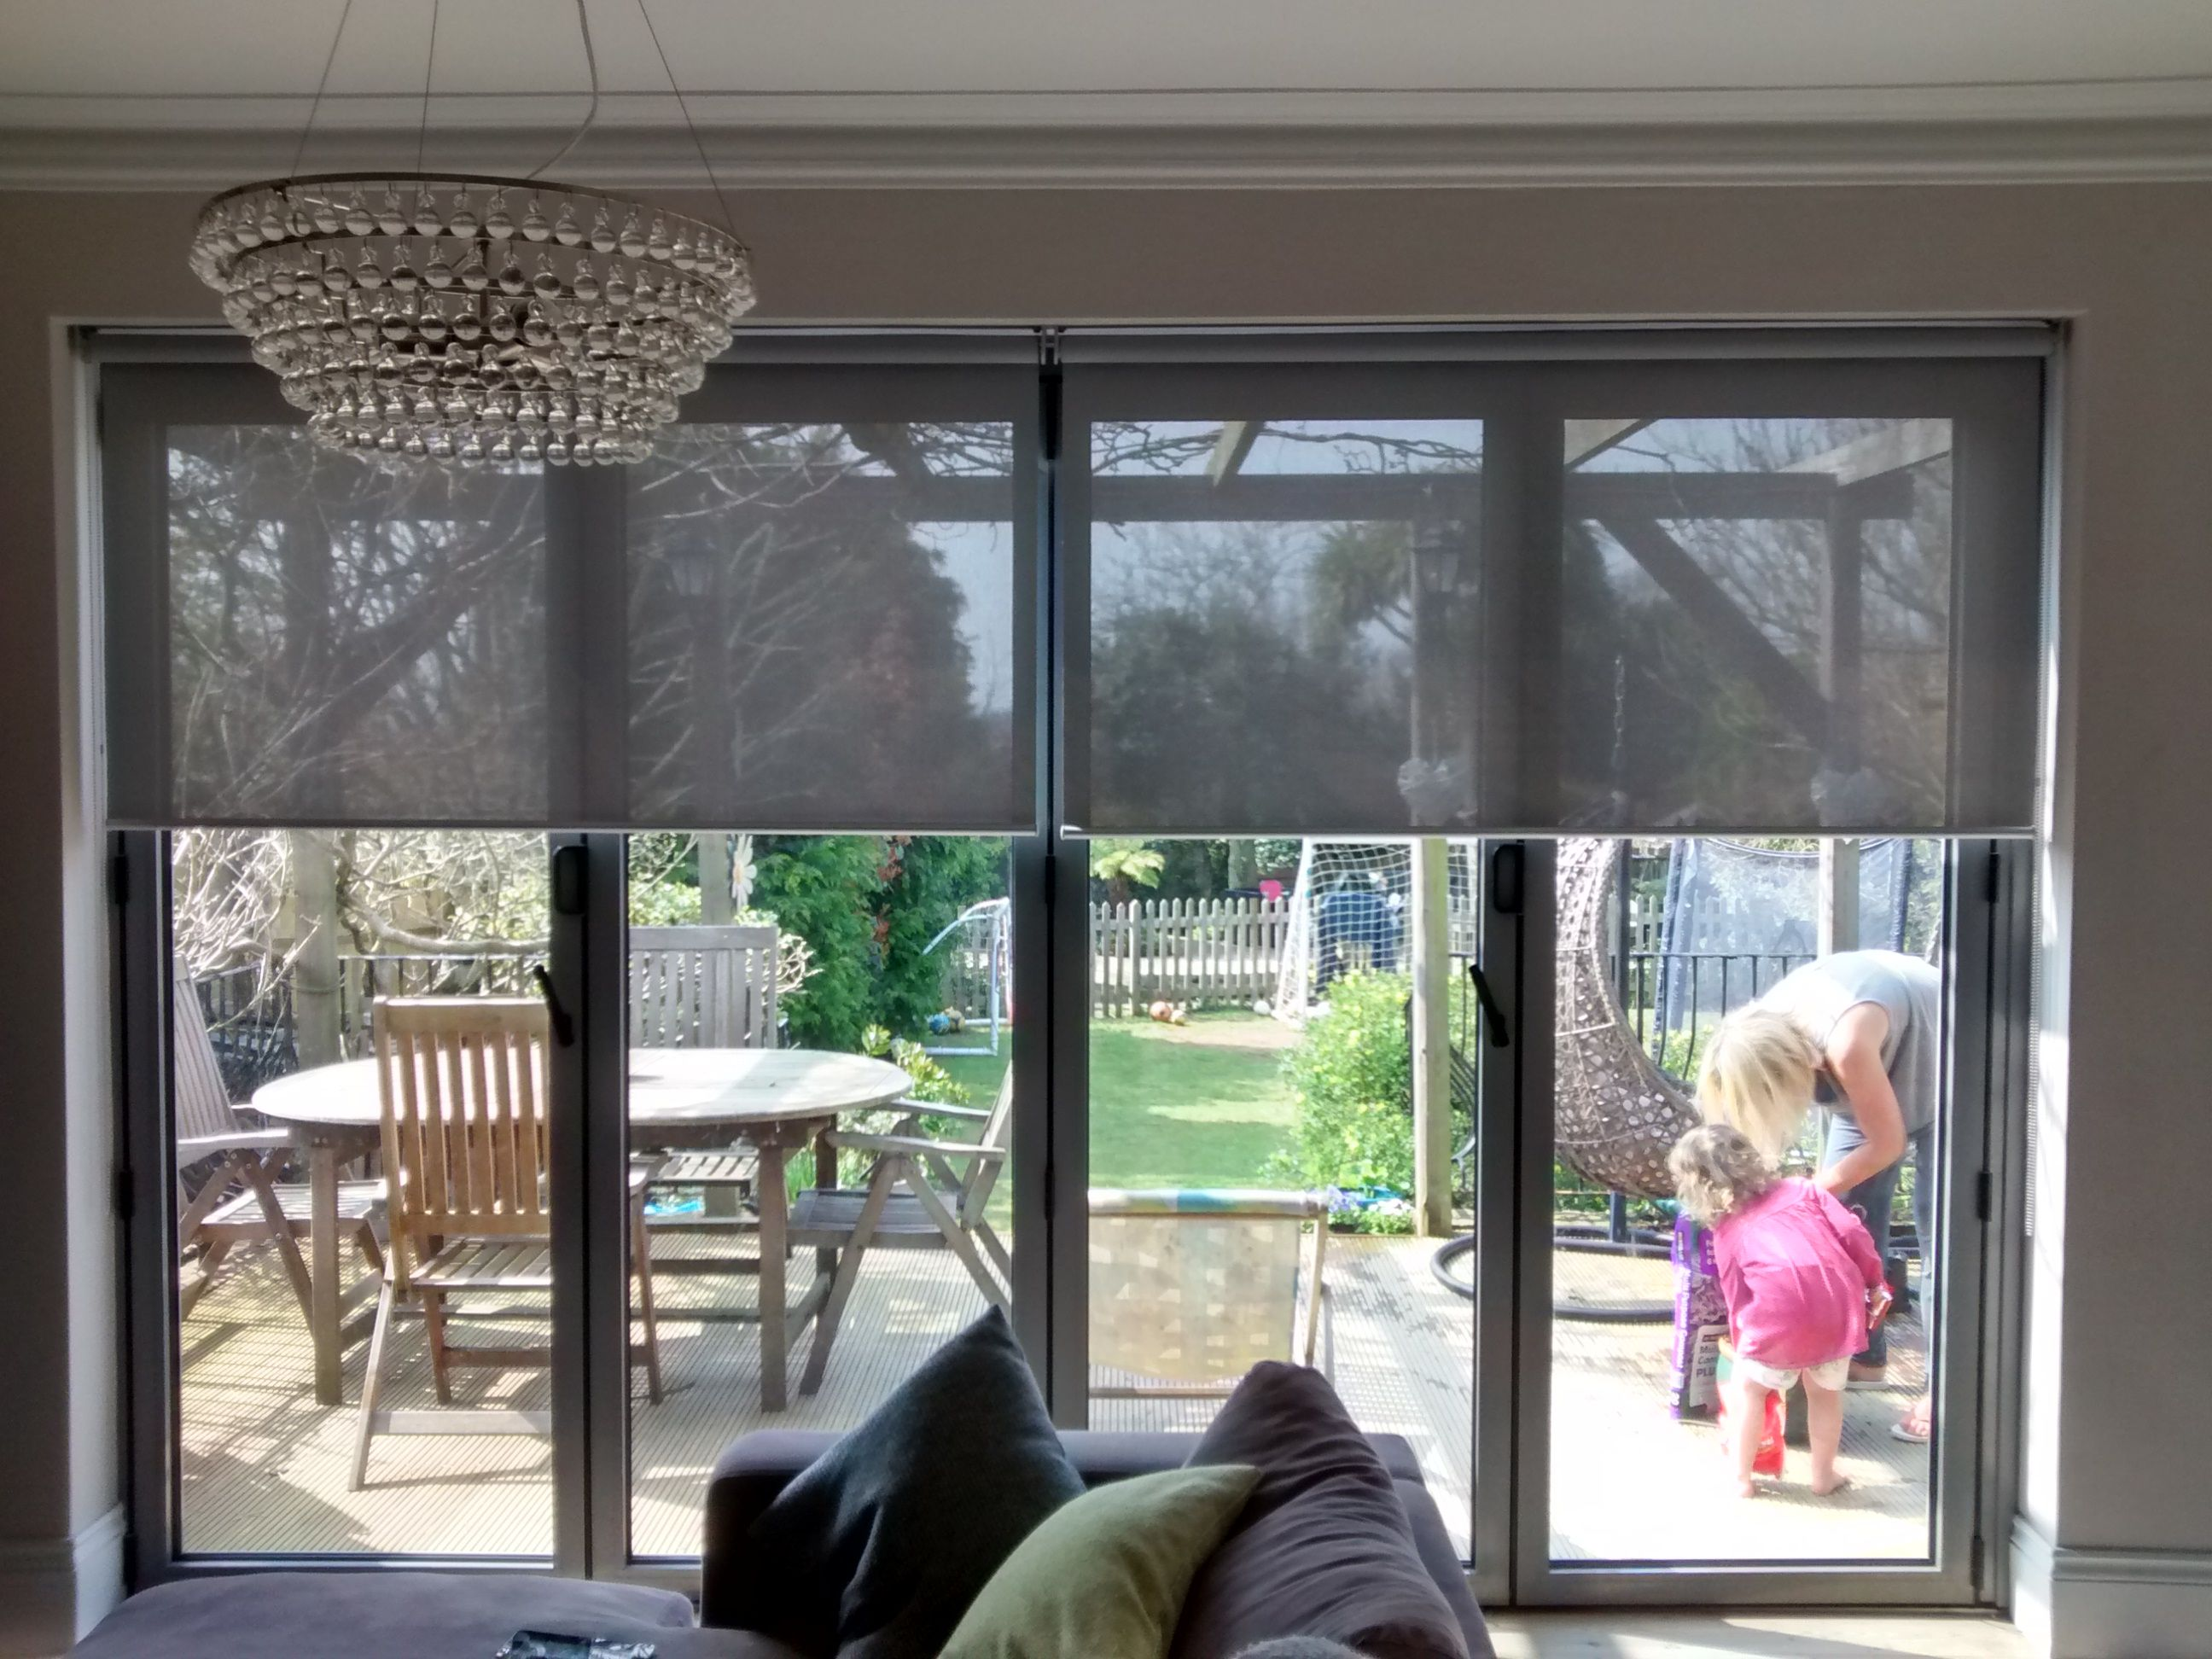 Merveilleux Sunscreen Roller Blinds Over Bi Fold Doors In Living Room. Supplied And  Installed By The Blind Shop.